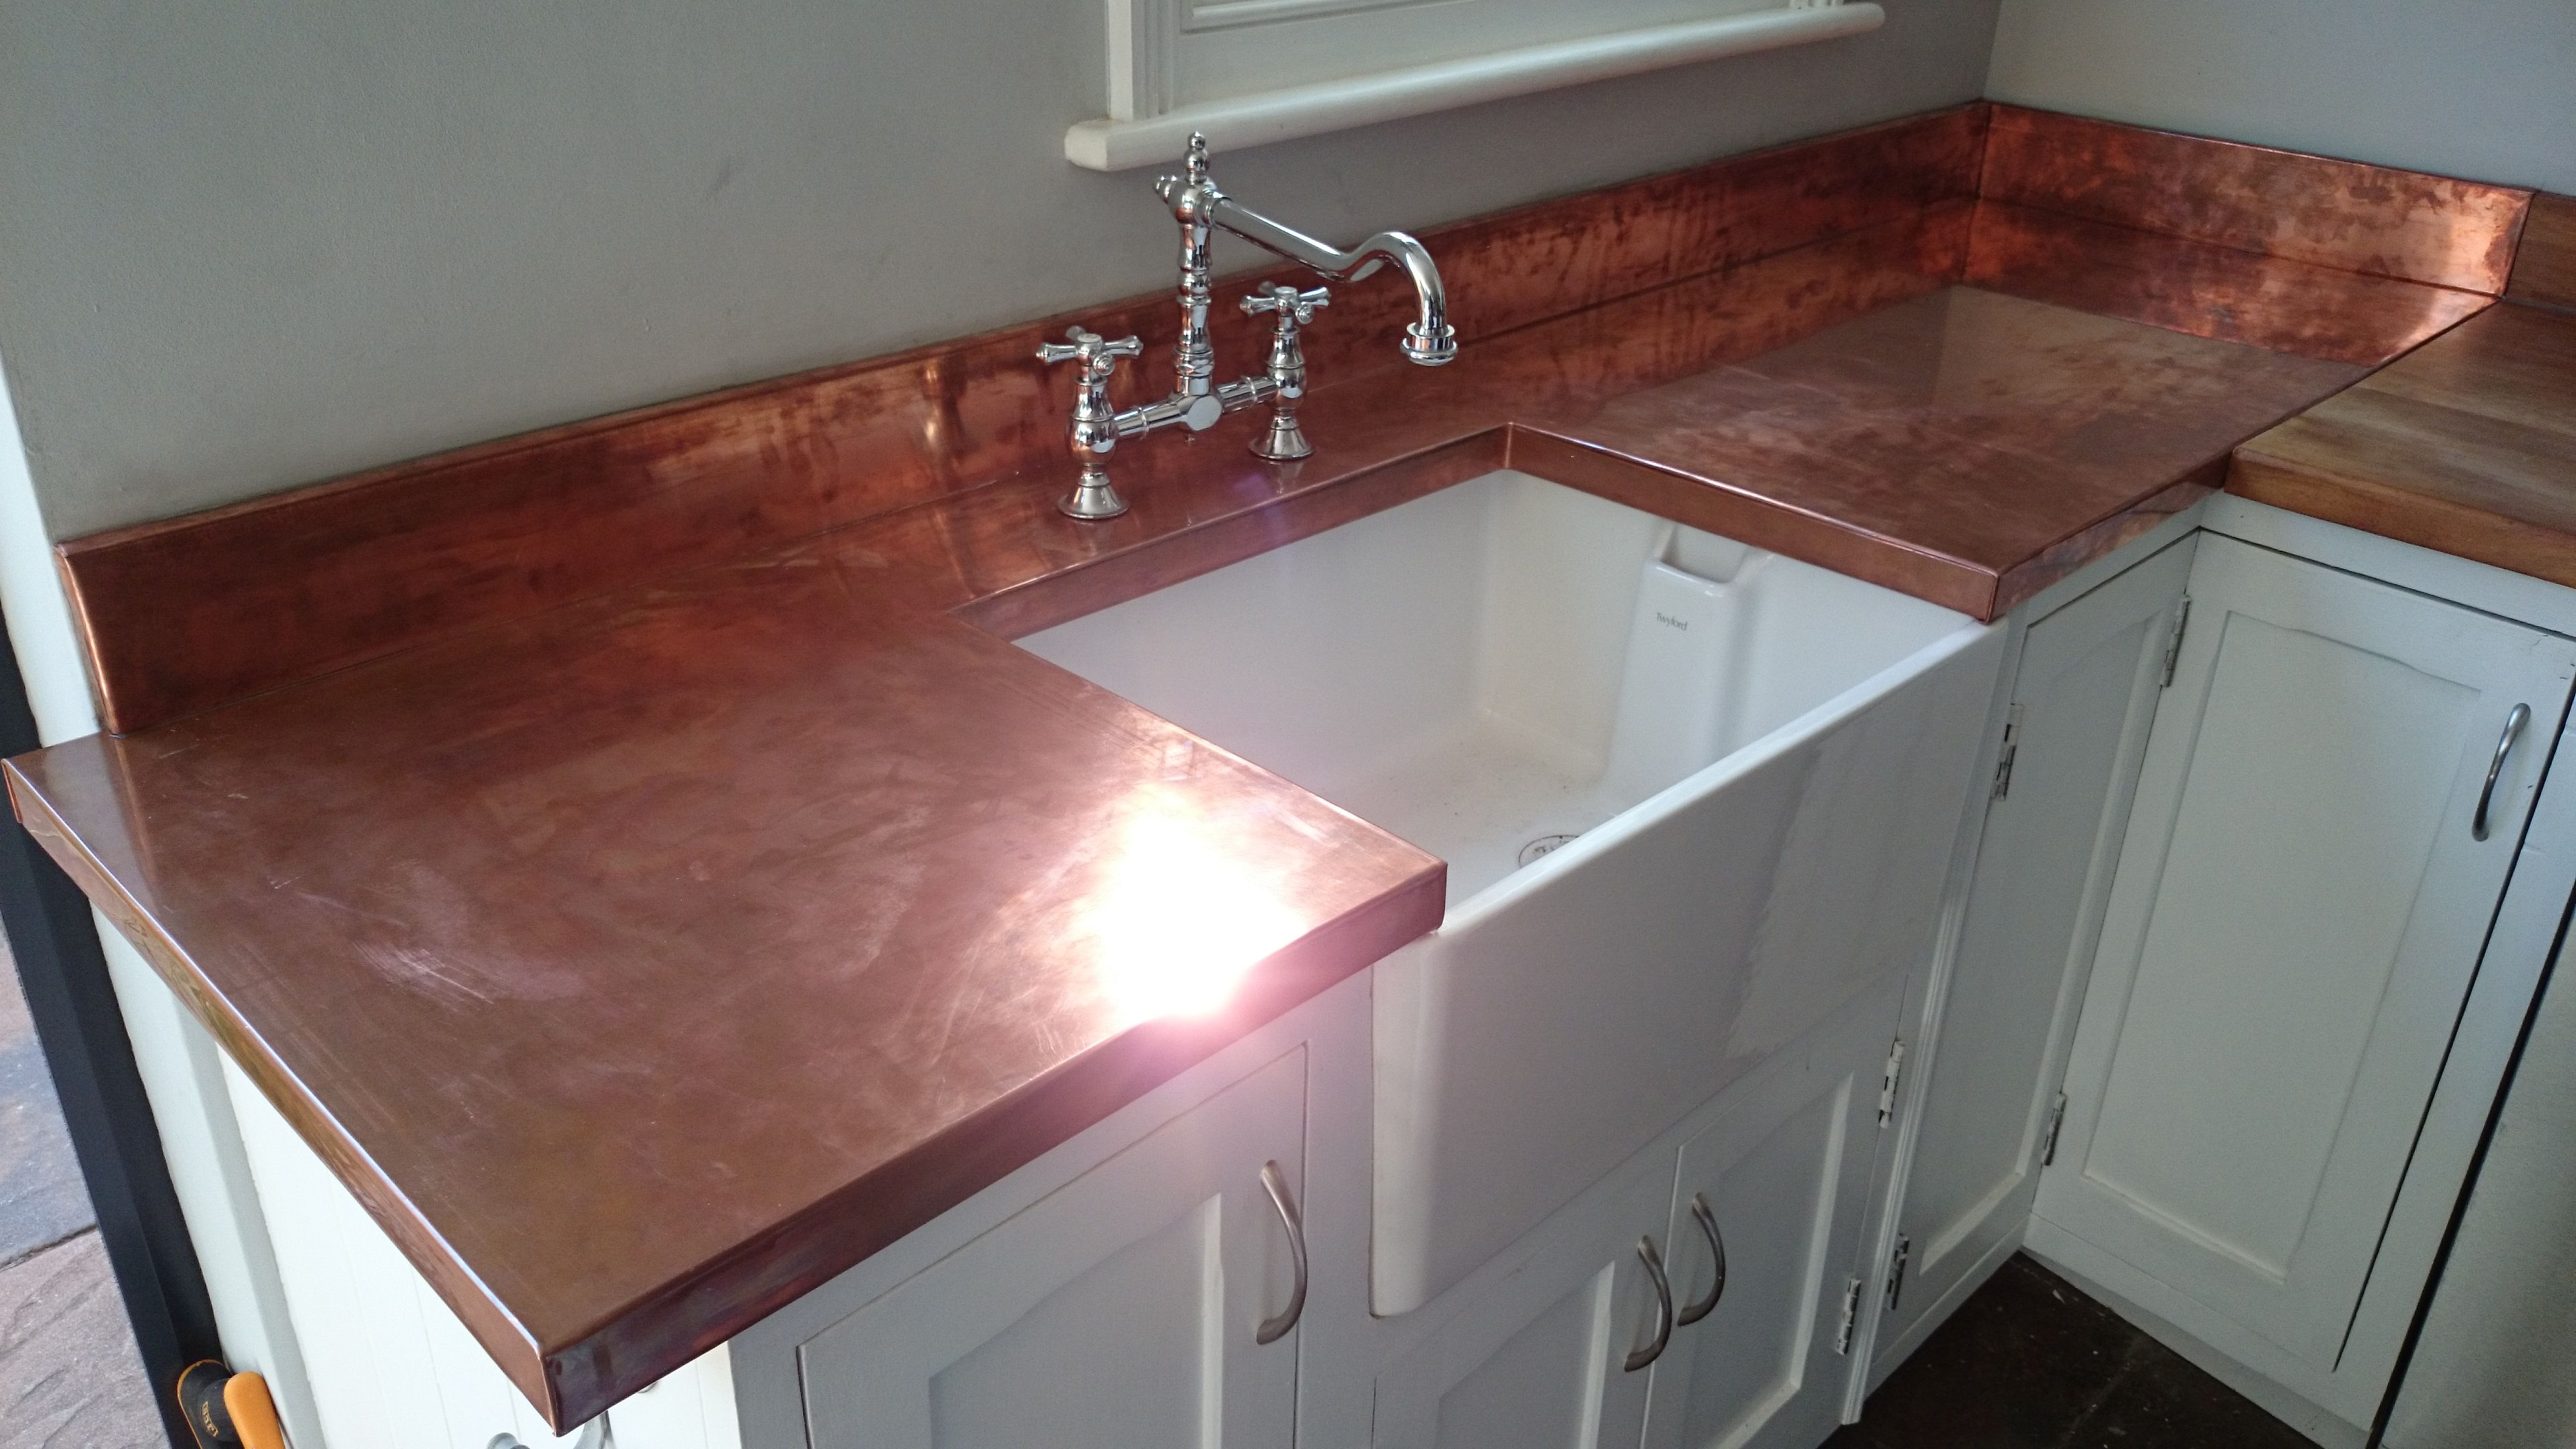 Copper Laminate Countertops Tipfords Copper Worktop Did I Mention I Love Copper